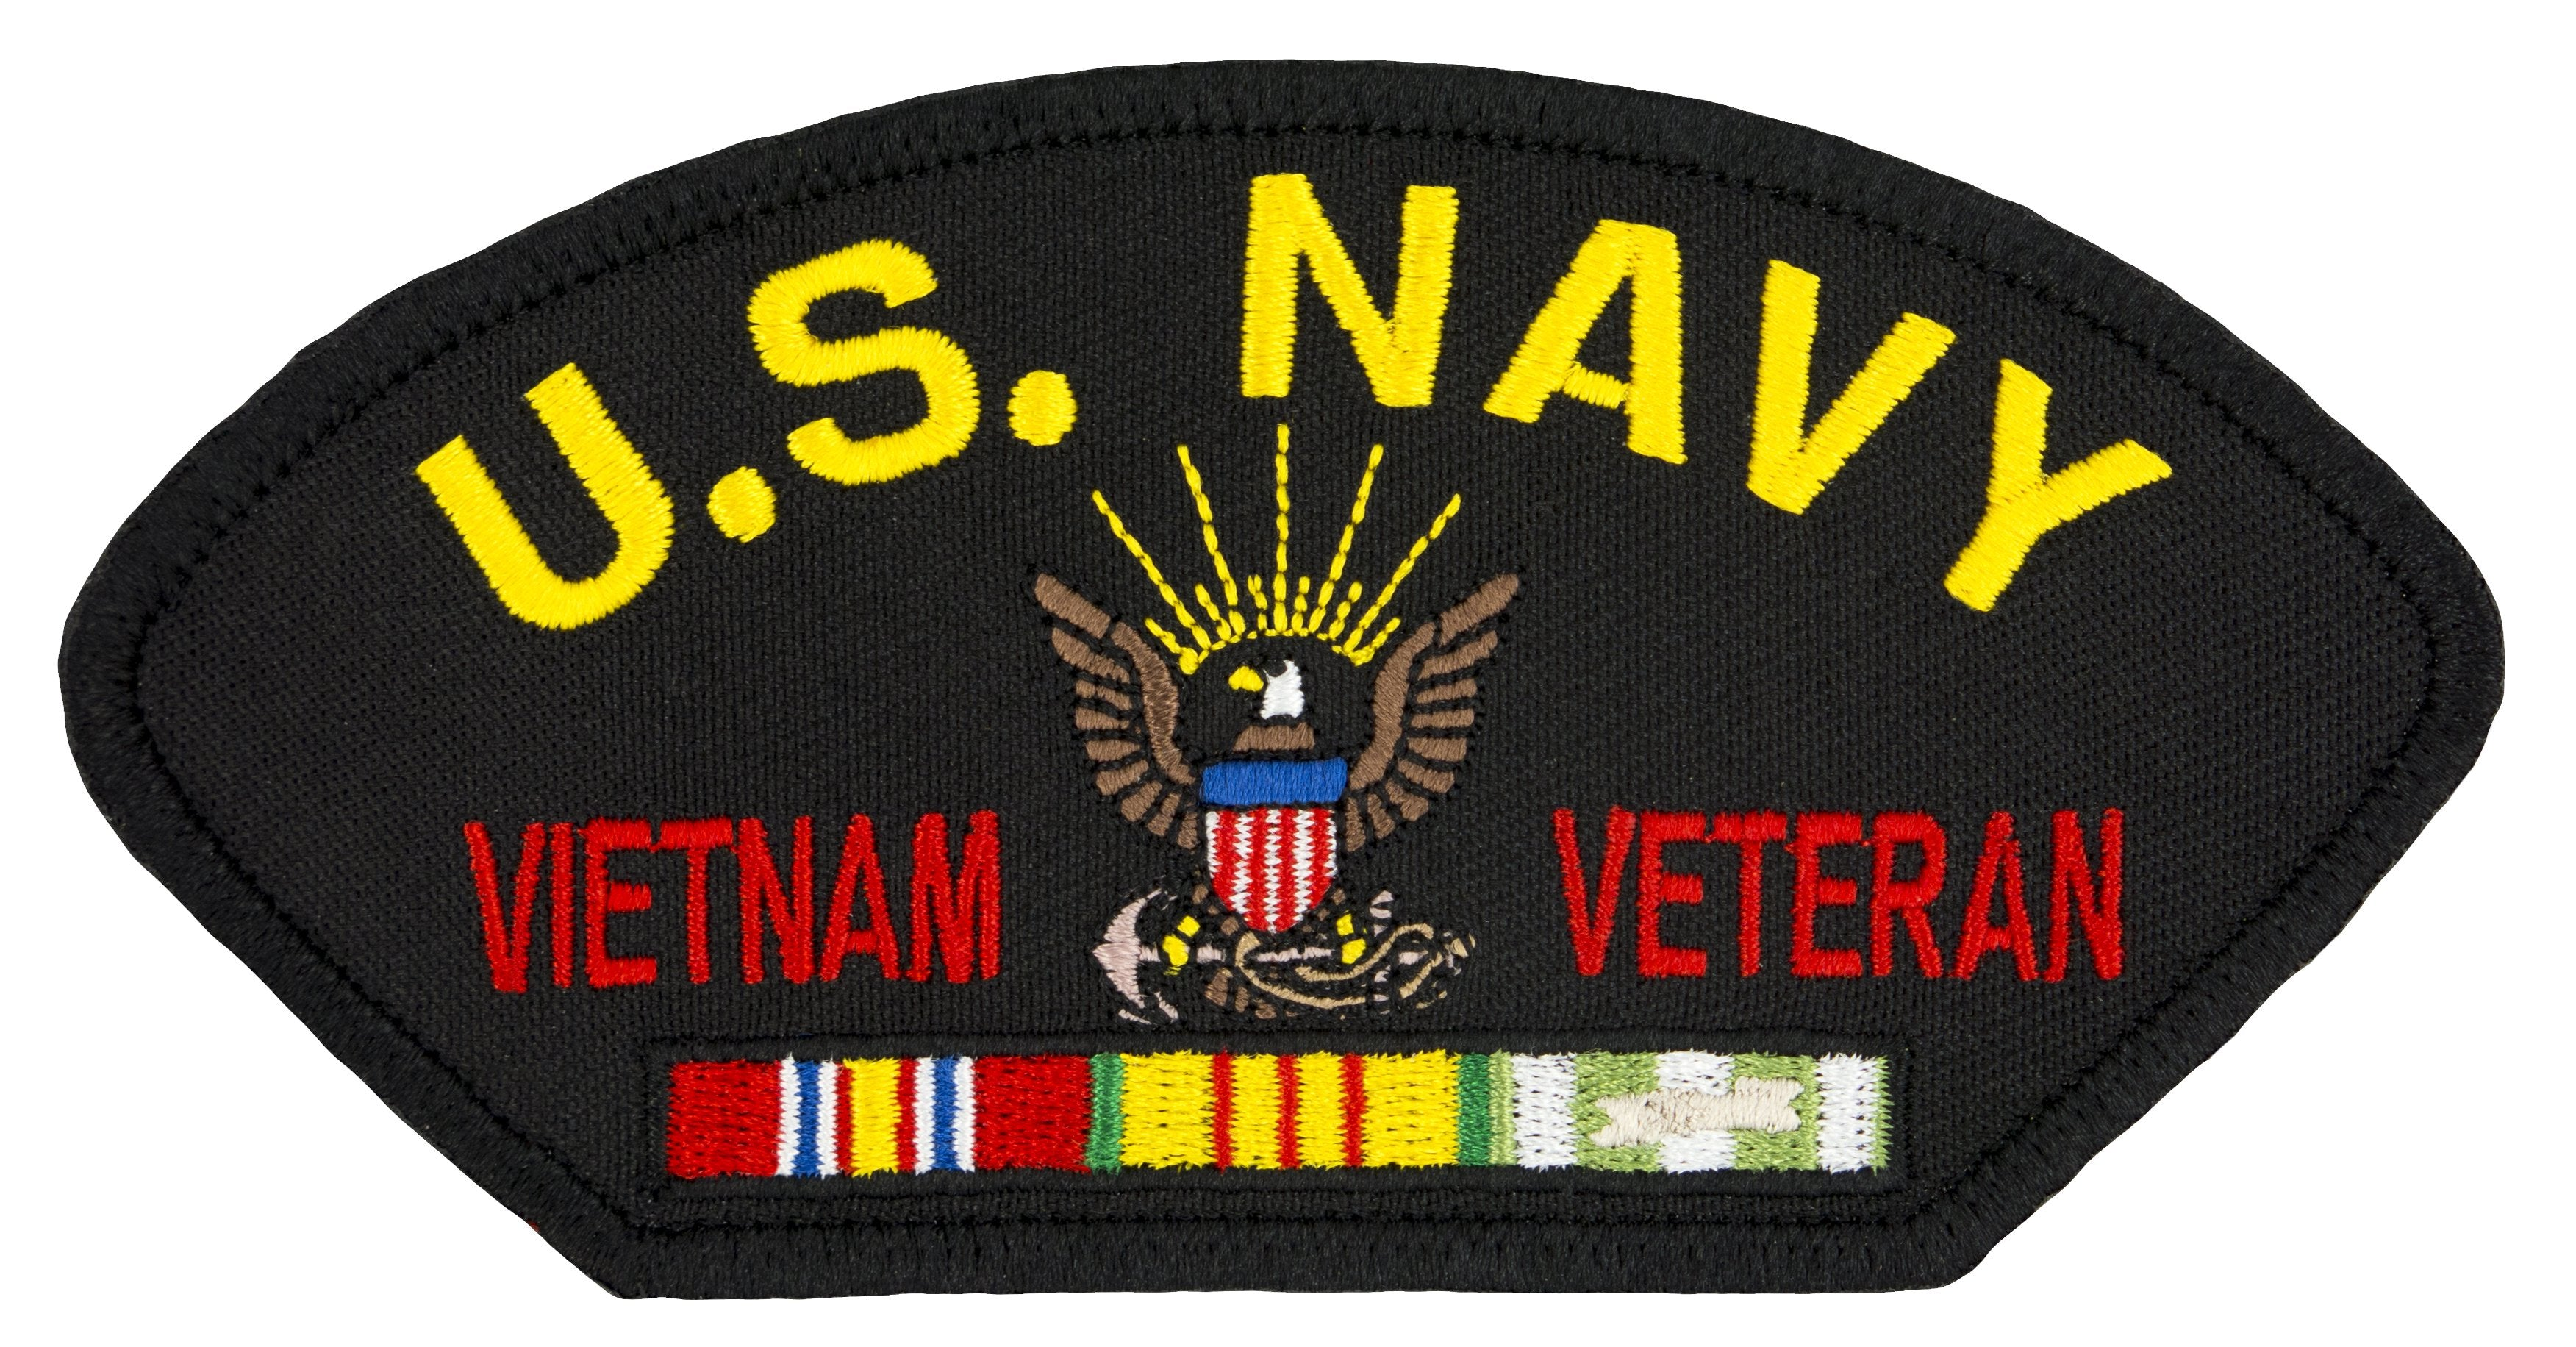 "US Navy Vietnam War Veteran Embroidered Patch 5 3/16"" x 2 5/8"""